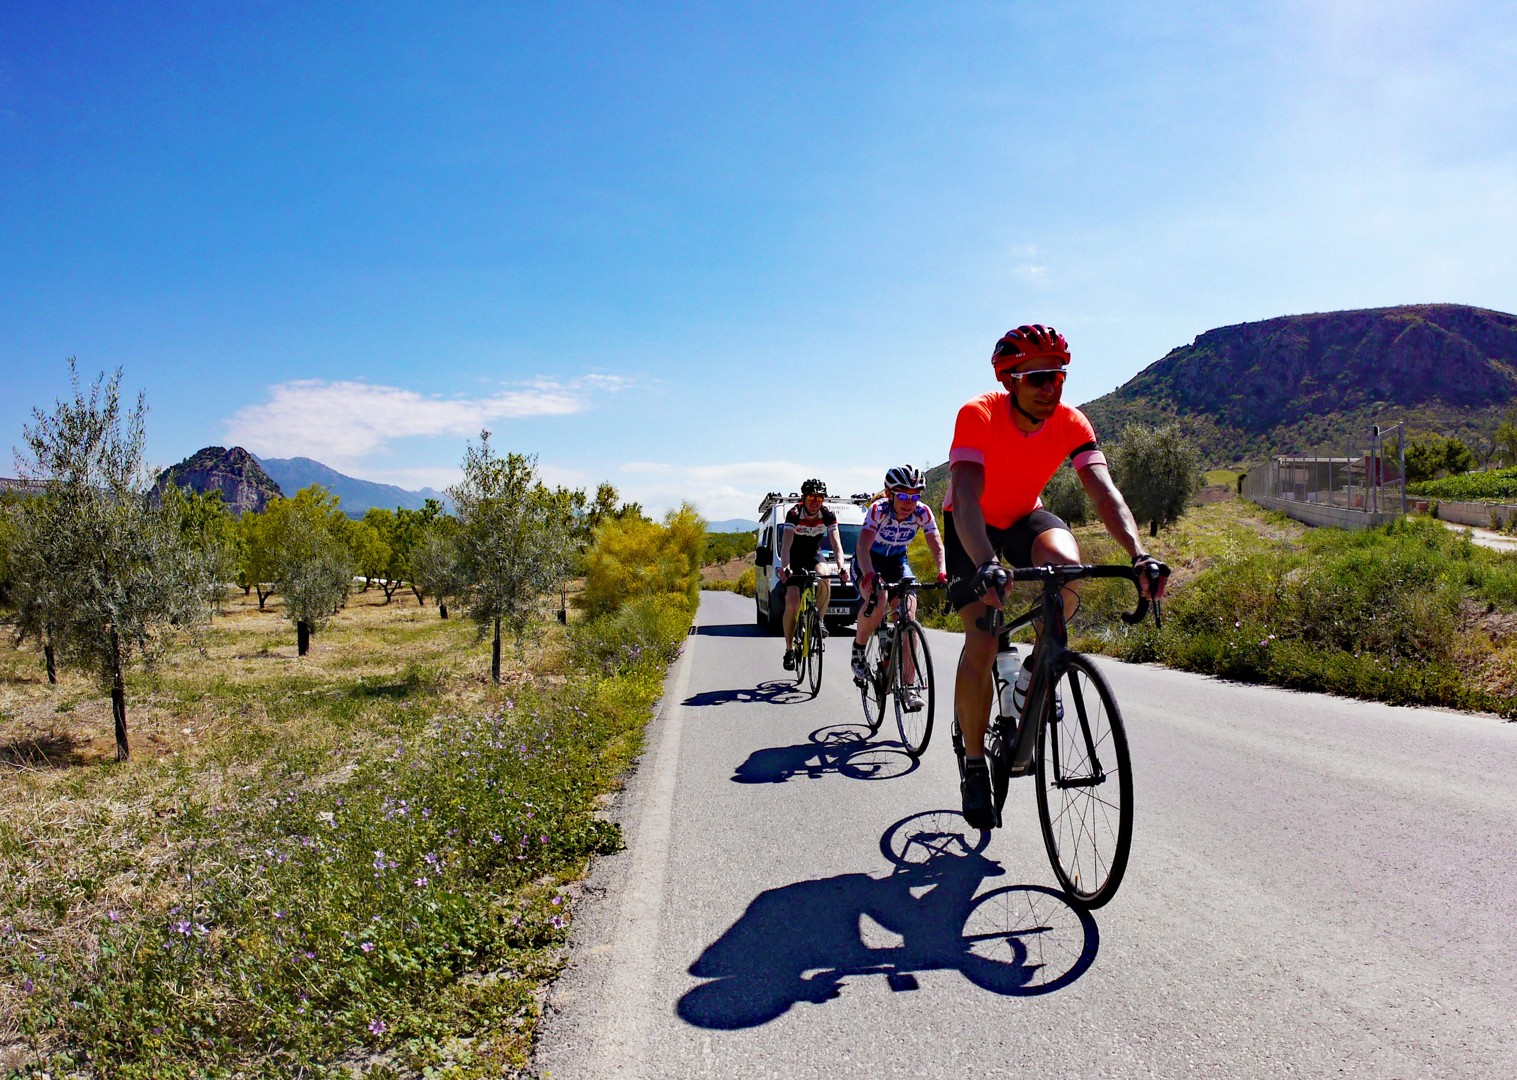 road-cycling-holiday-del-norte-al-sur.jpg - Spain - Del Norte al Sur - Basque Country to Andalucia - Guided Road Cycling Holiday - Road Cycling